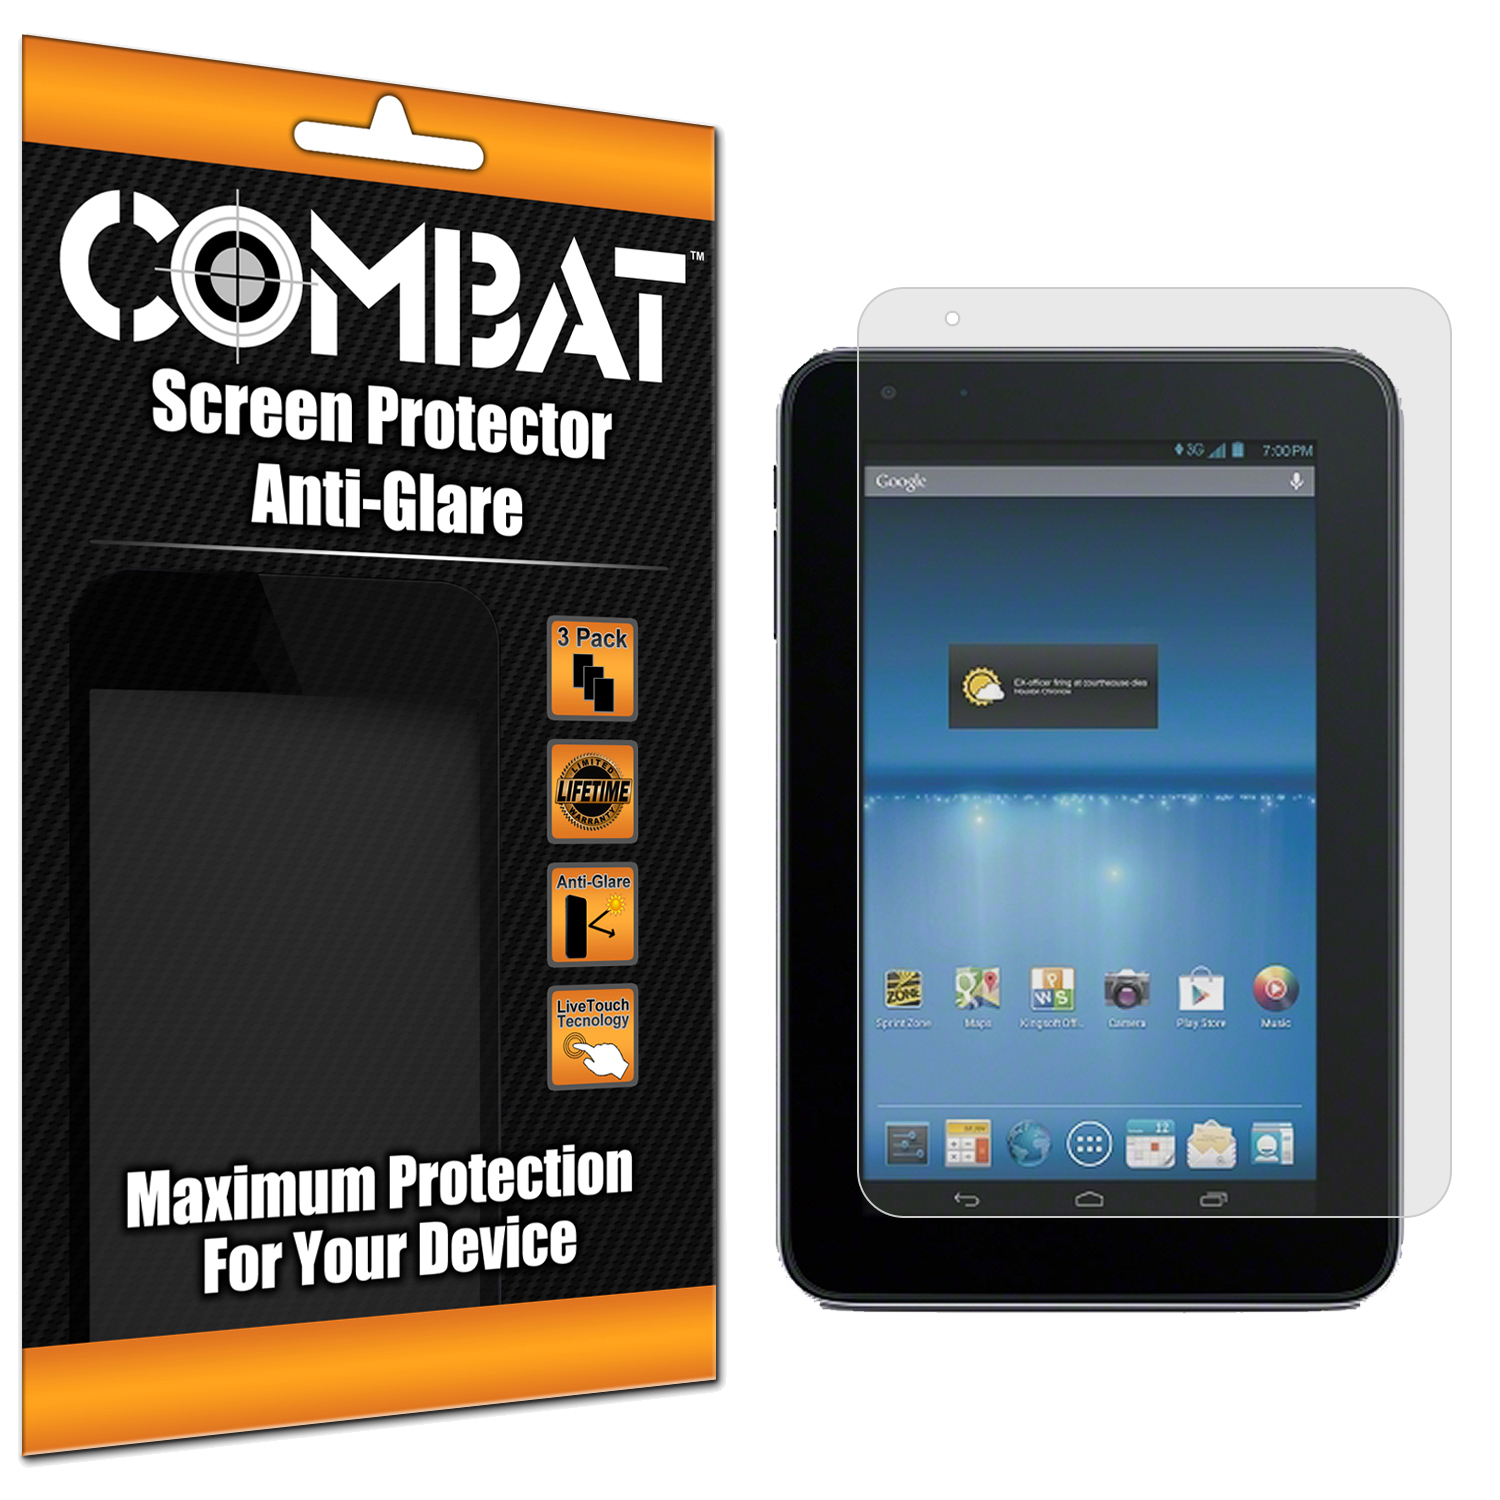 ZTE Optik 2 Combat 3 Pack Anti-Glare Matte Screen Protector